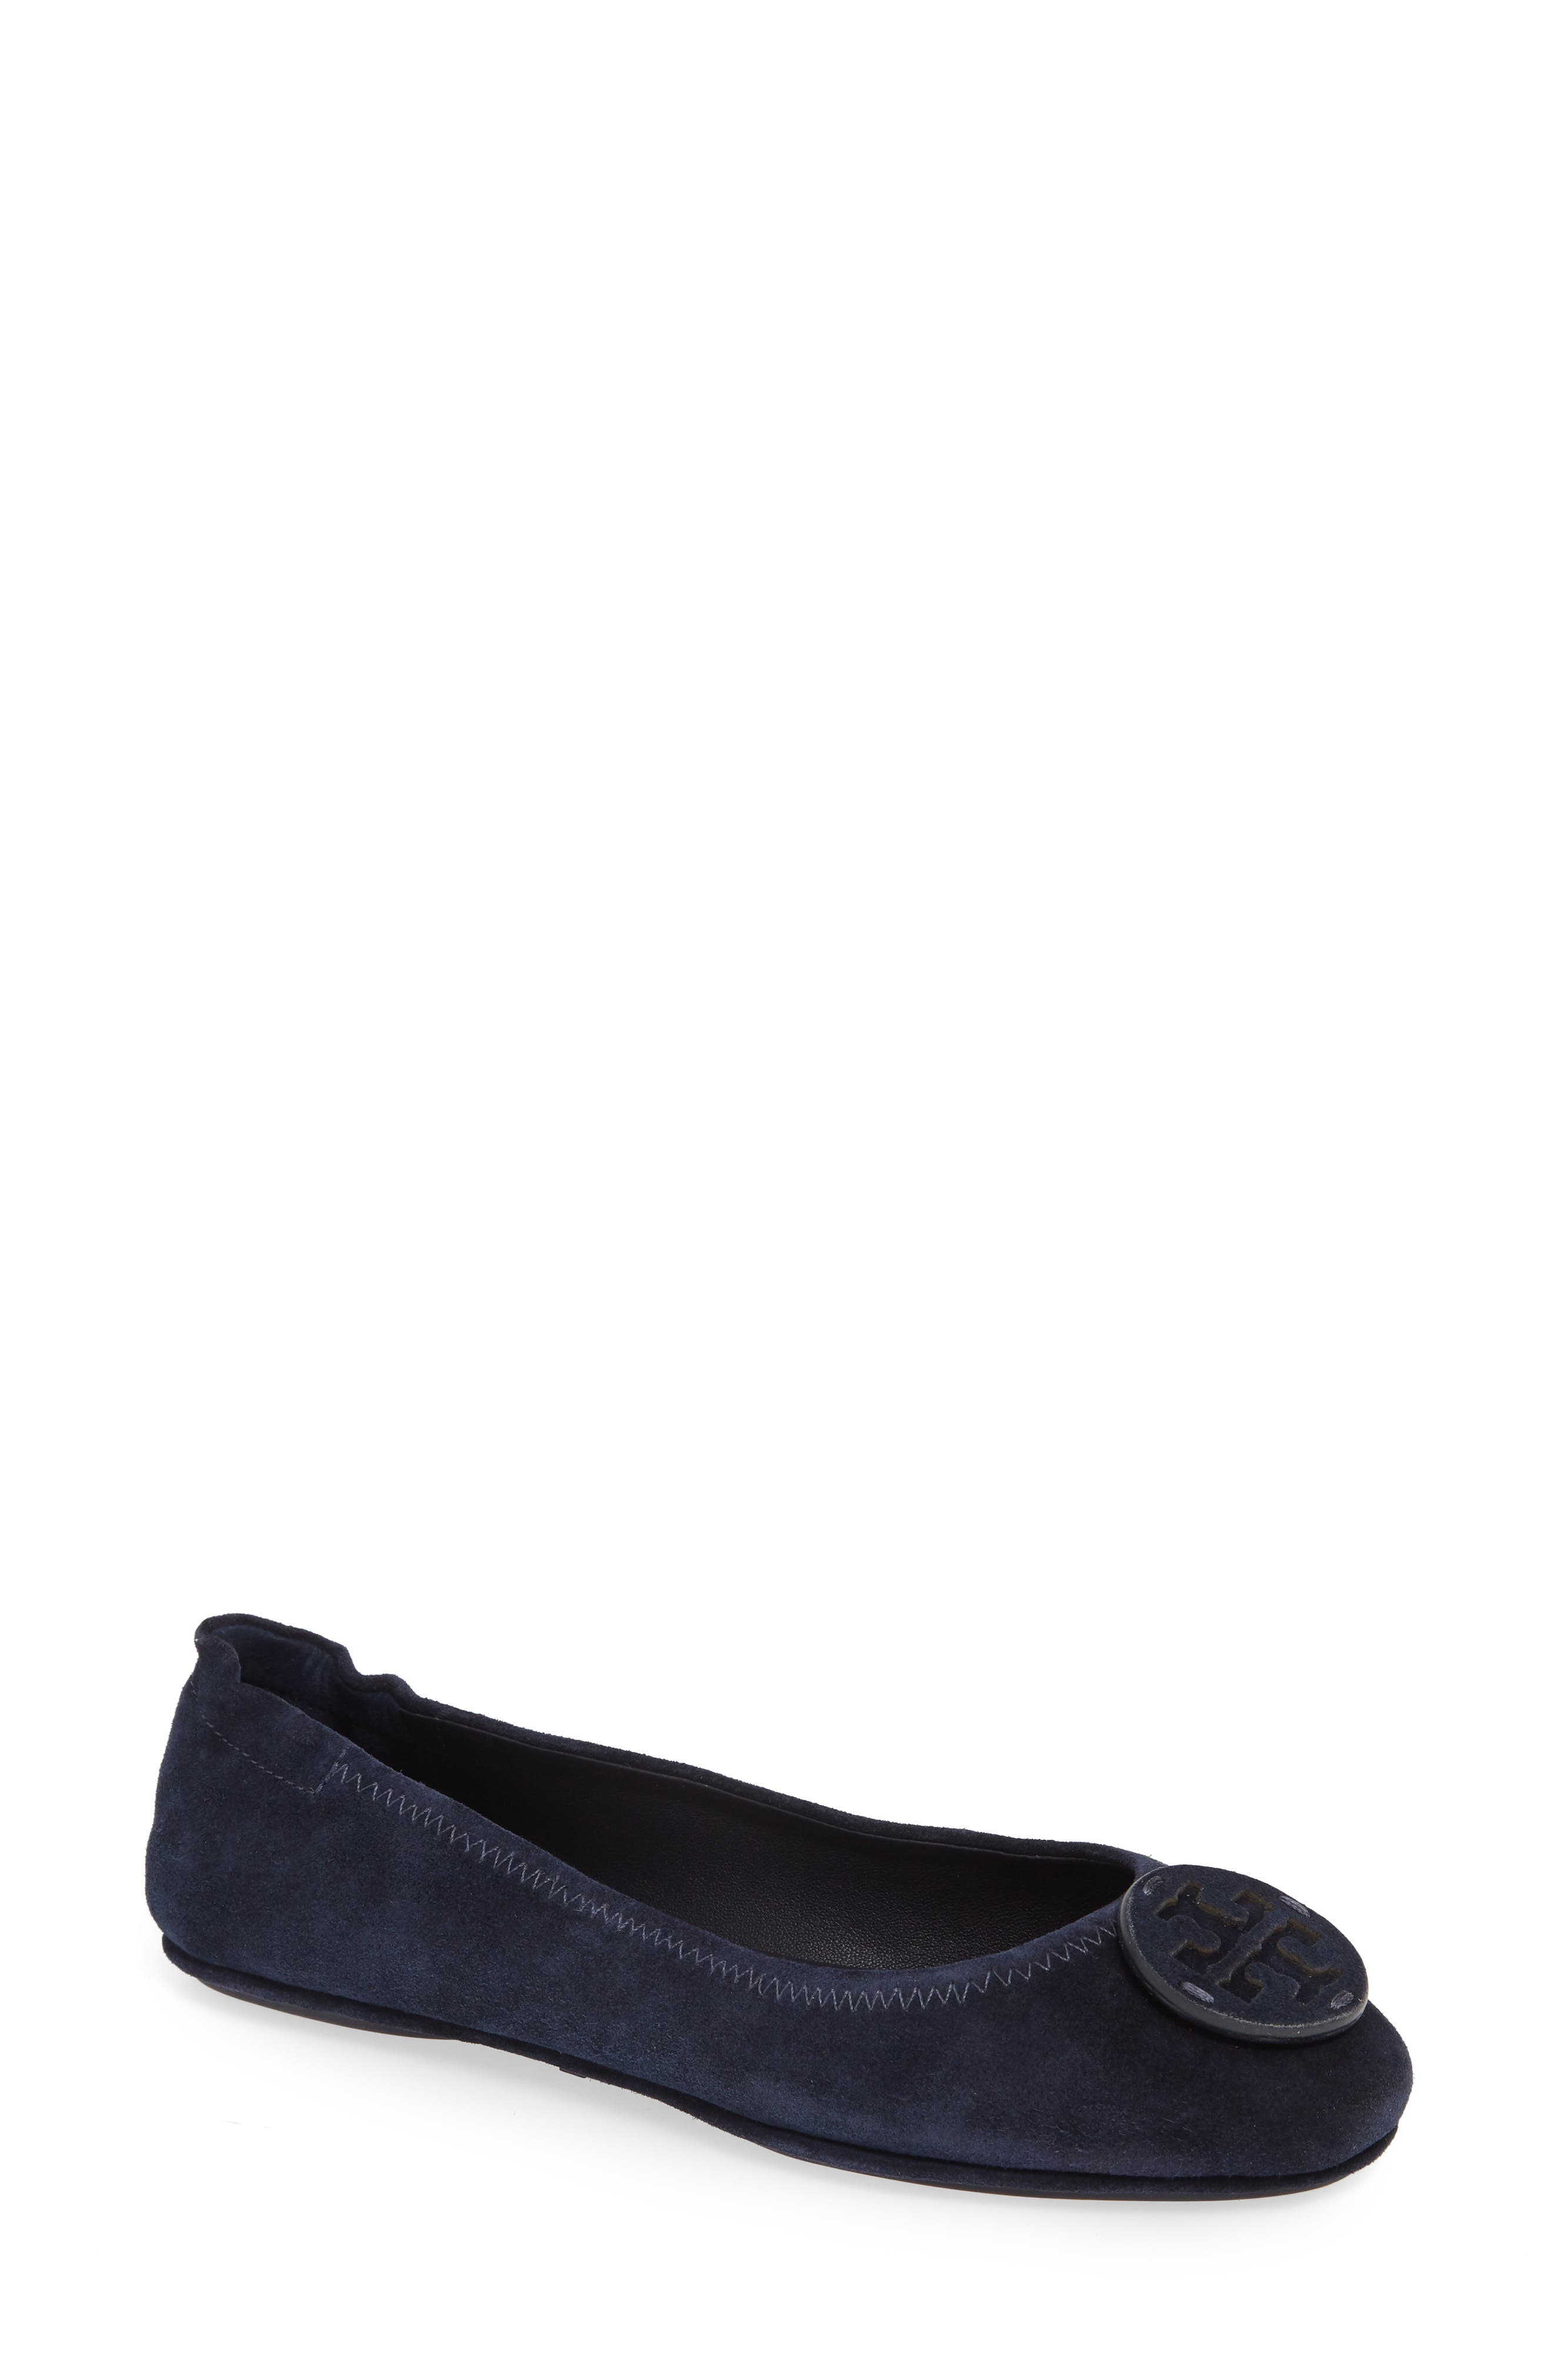 Geox Ballerina Shoes For Women Navy price in Dubai, UAE | Compare Prices